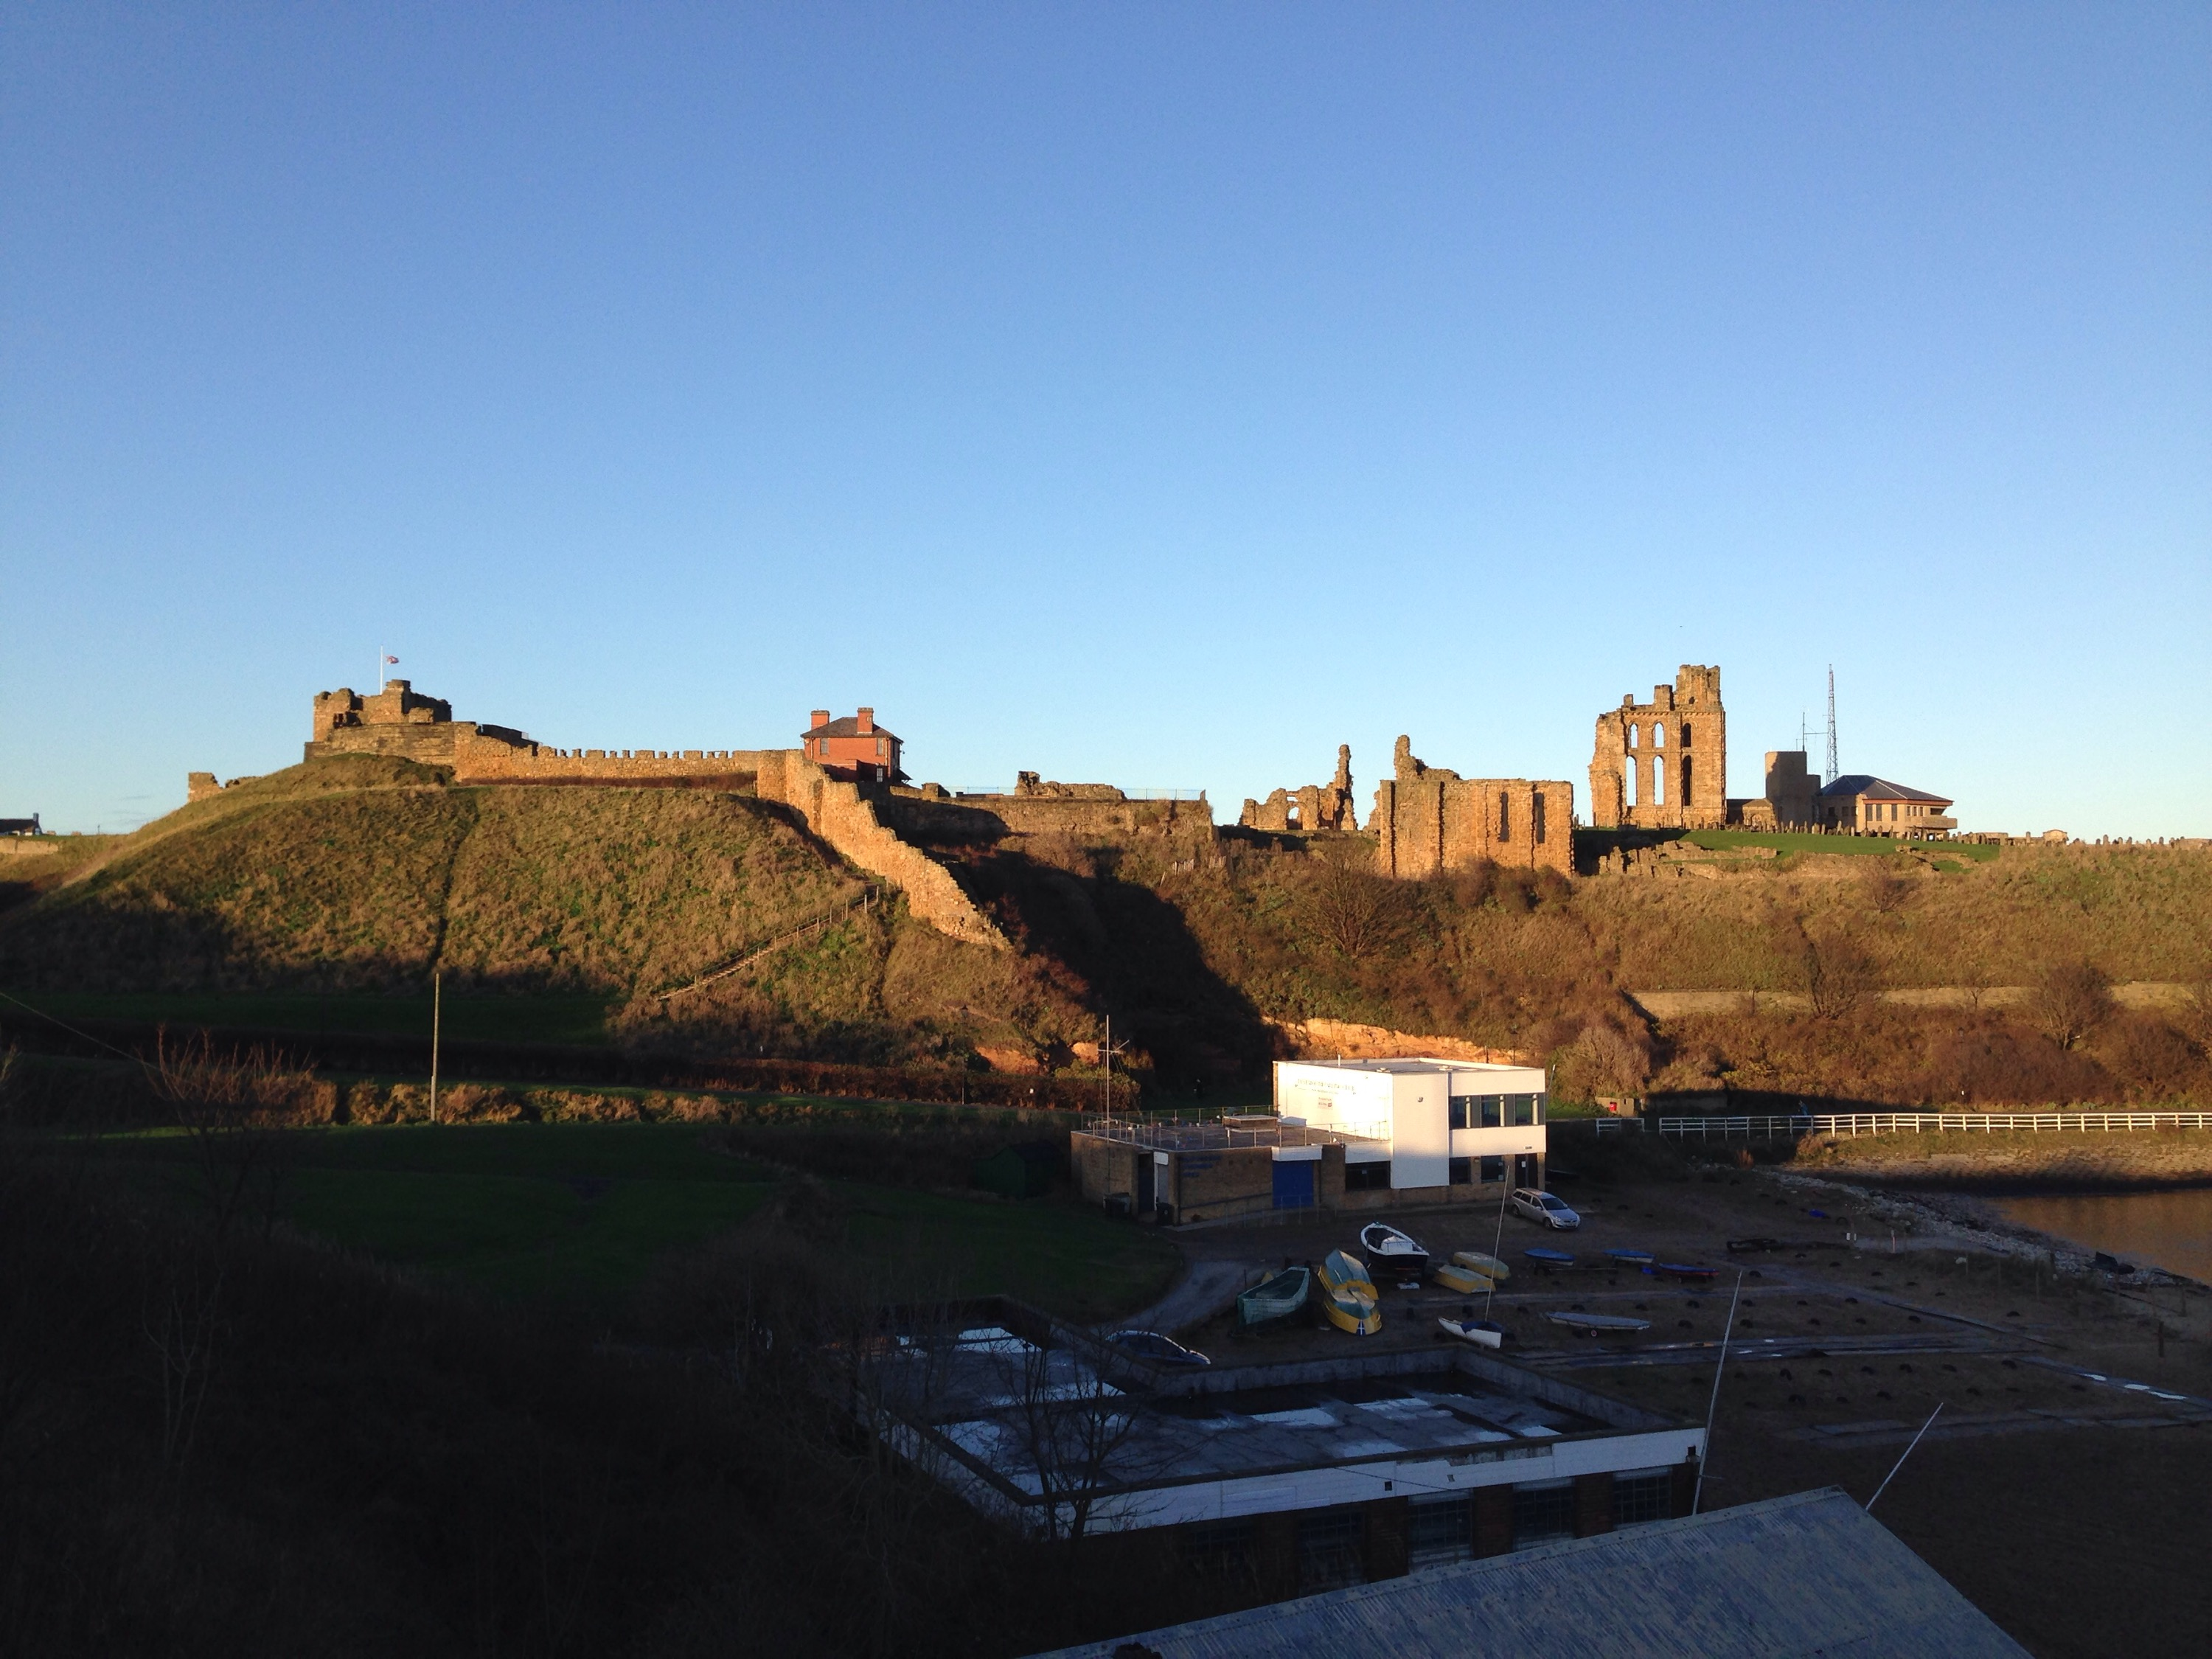 tynemouth priory with sailing club buildings nearby